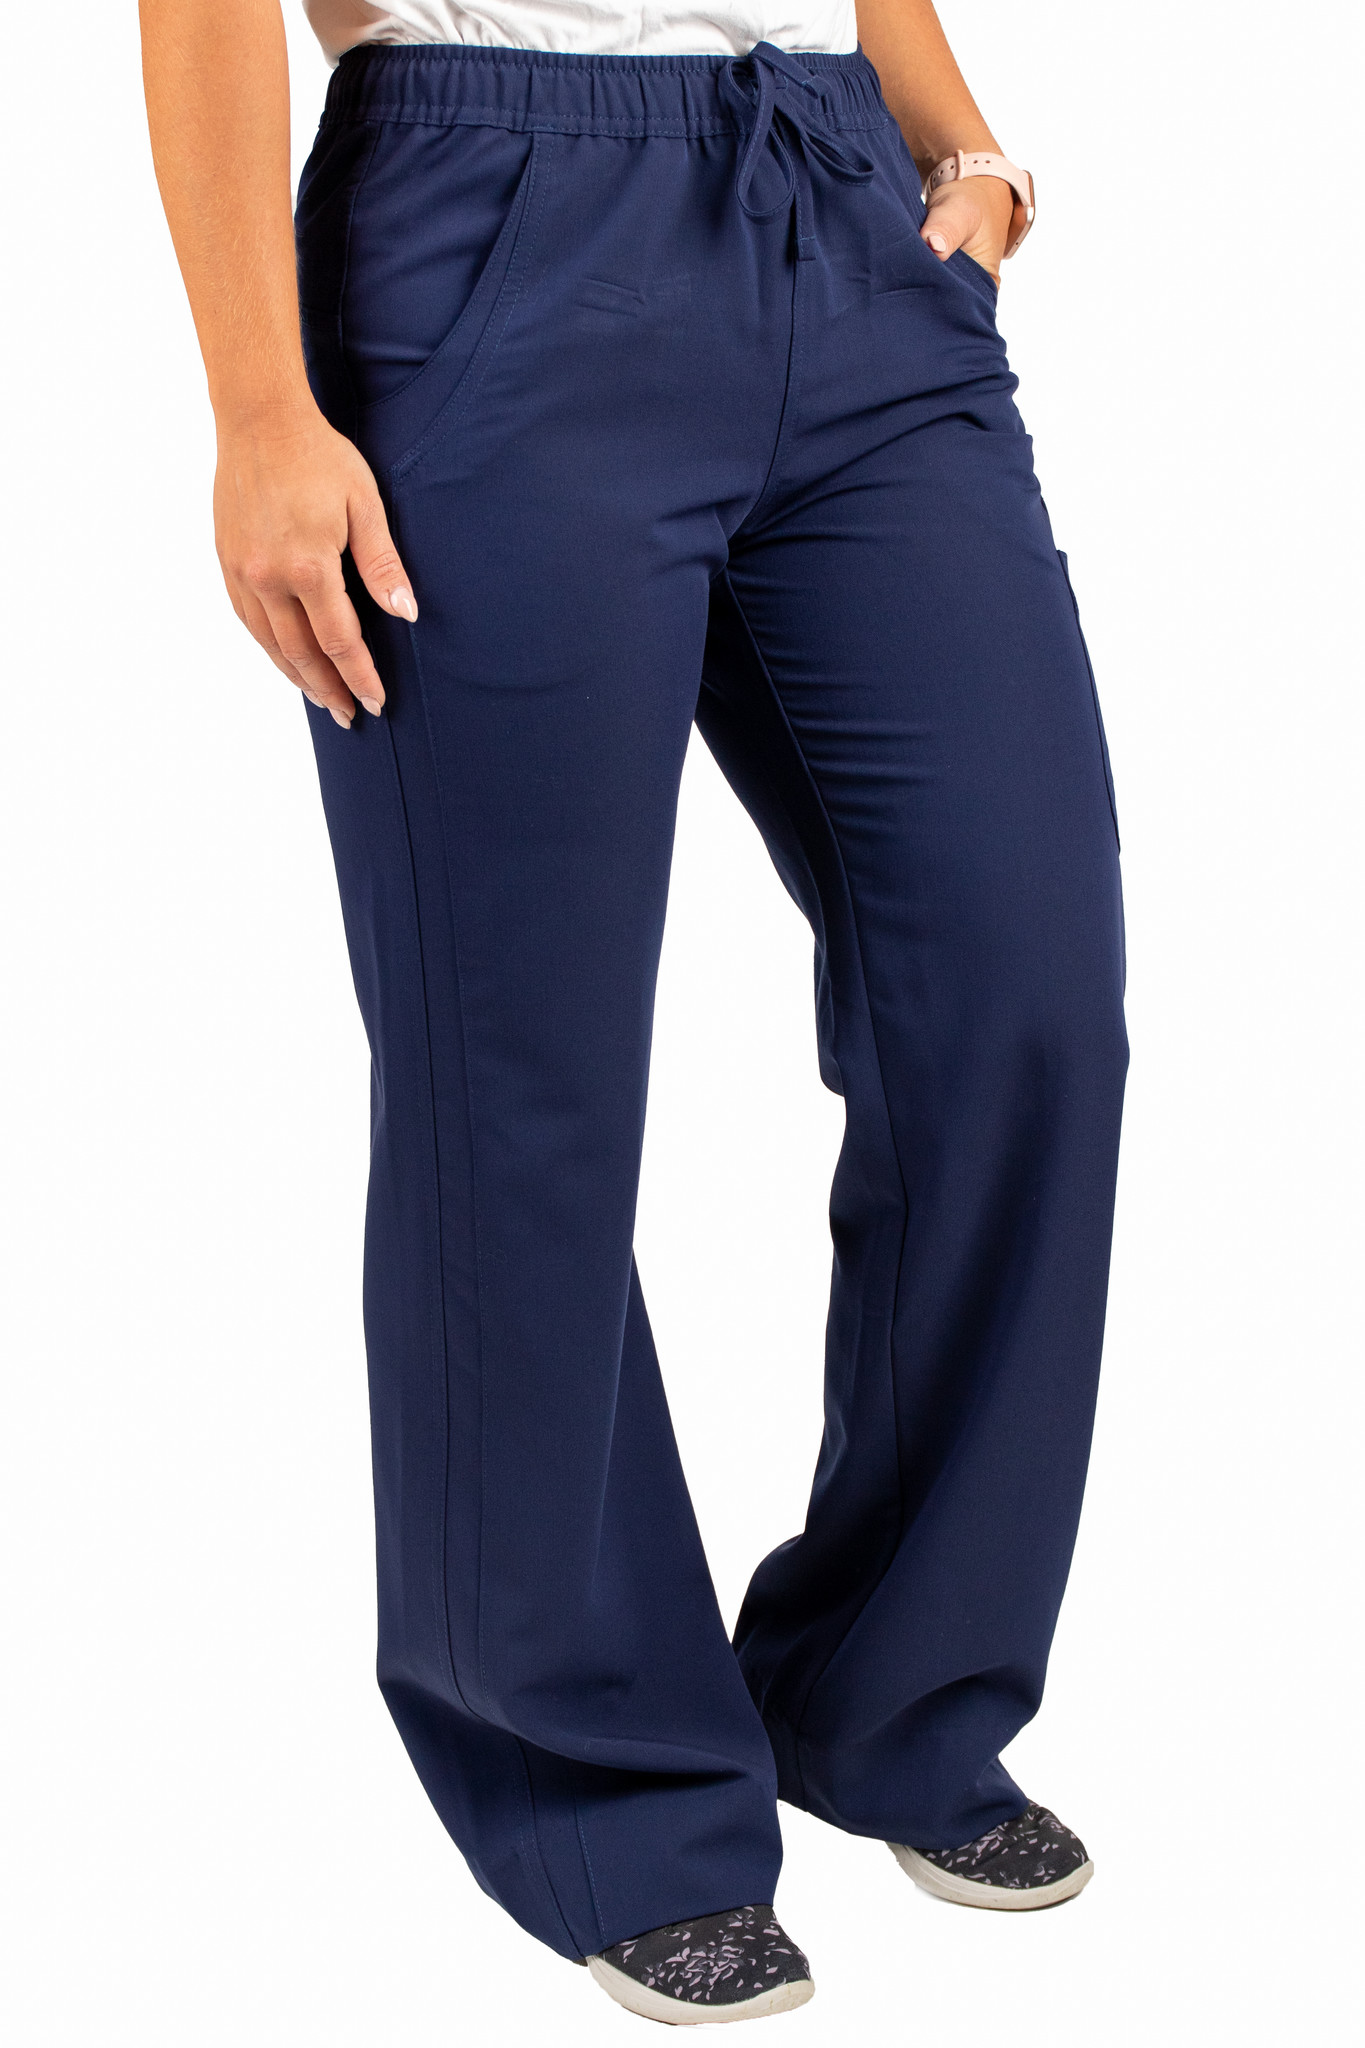 Navy Blue Women's Drawstring Waistband Fitted Pants 960